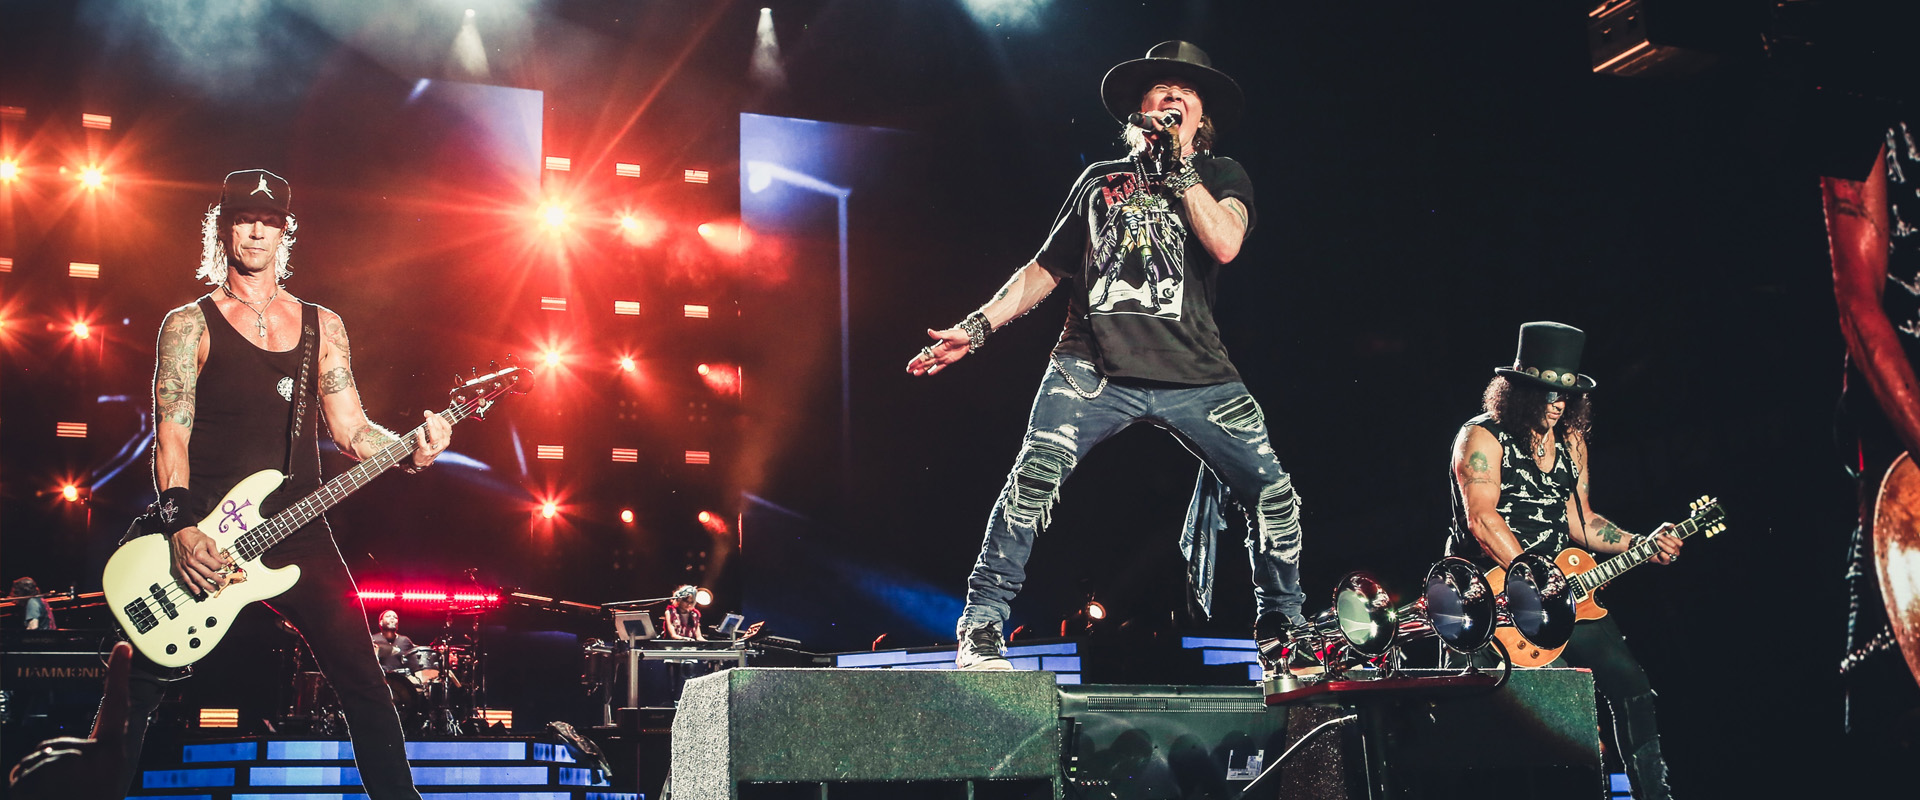 Guns'N'Roses - Not In This Lifetime Tour